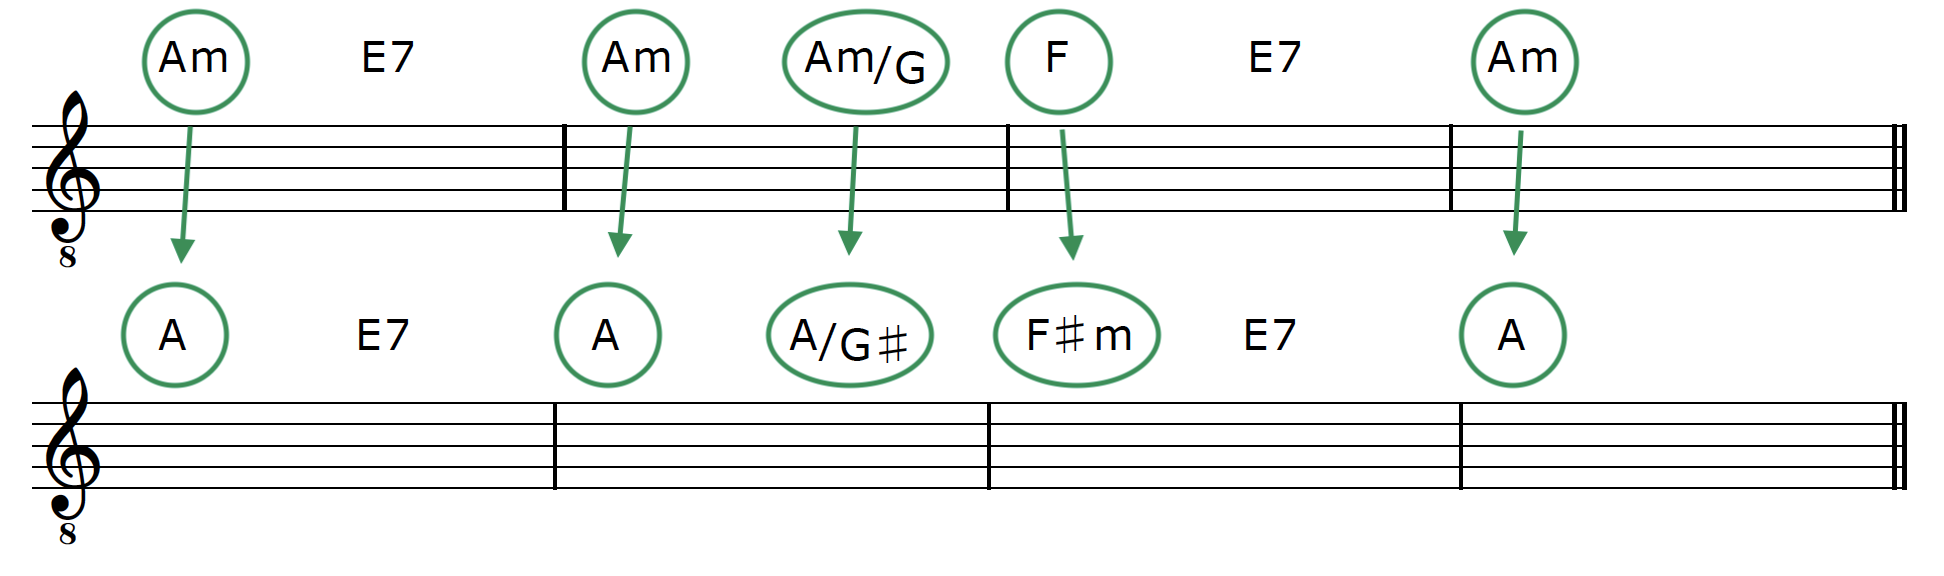 Parallel Key Modulation Chord Converted  2